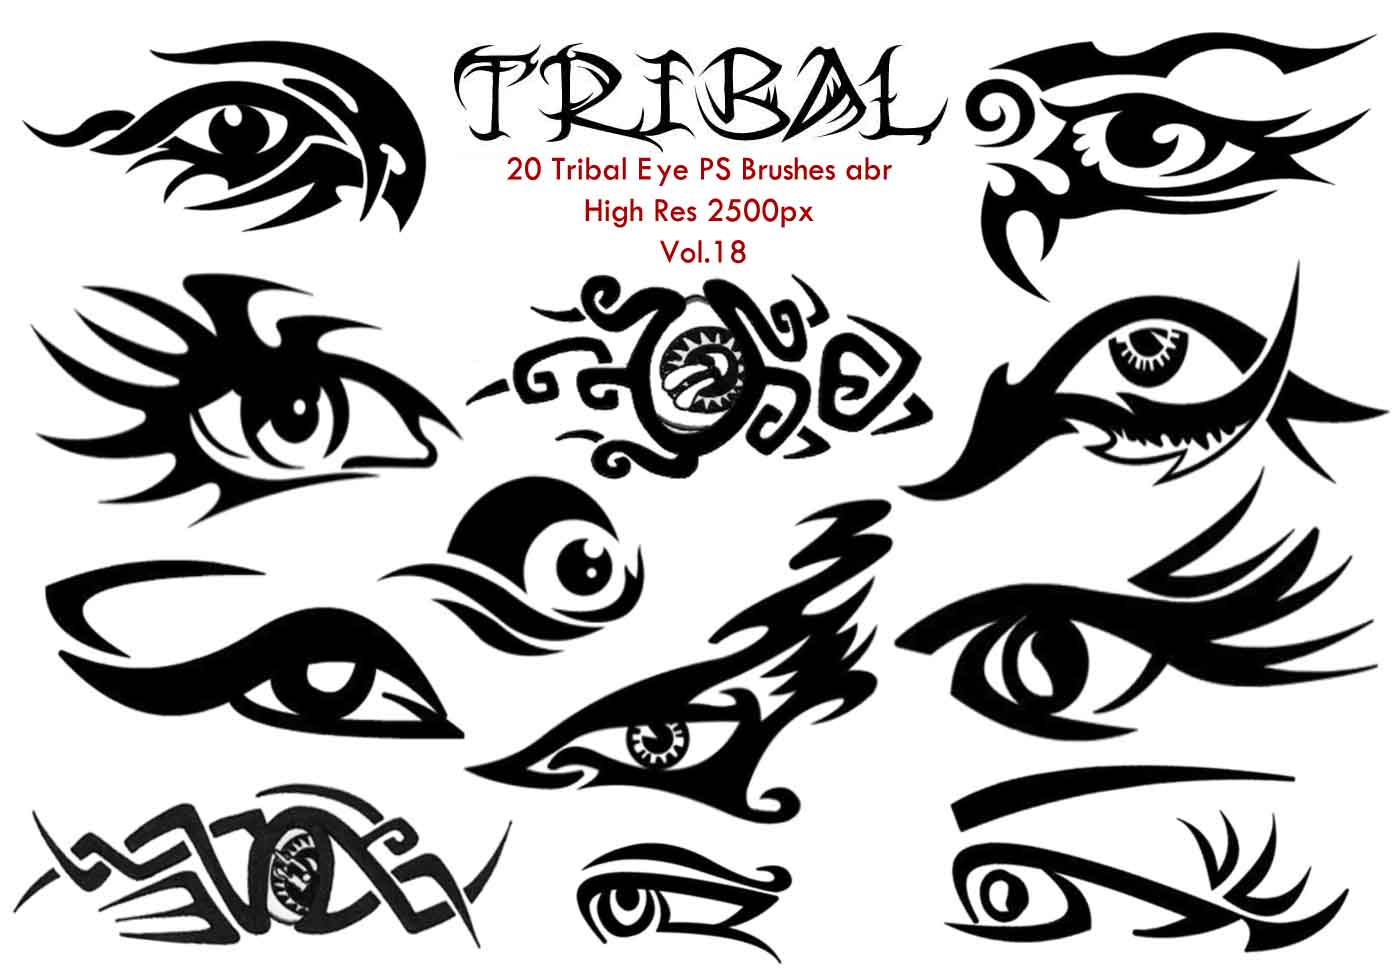 57839 20 Tribal Eye Ps Brushes Vol 18 on Tattoo Designs Free Rose